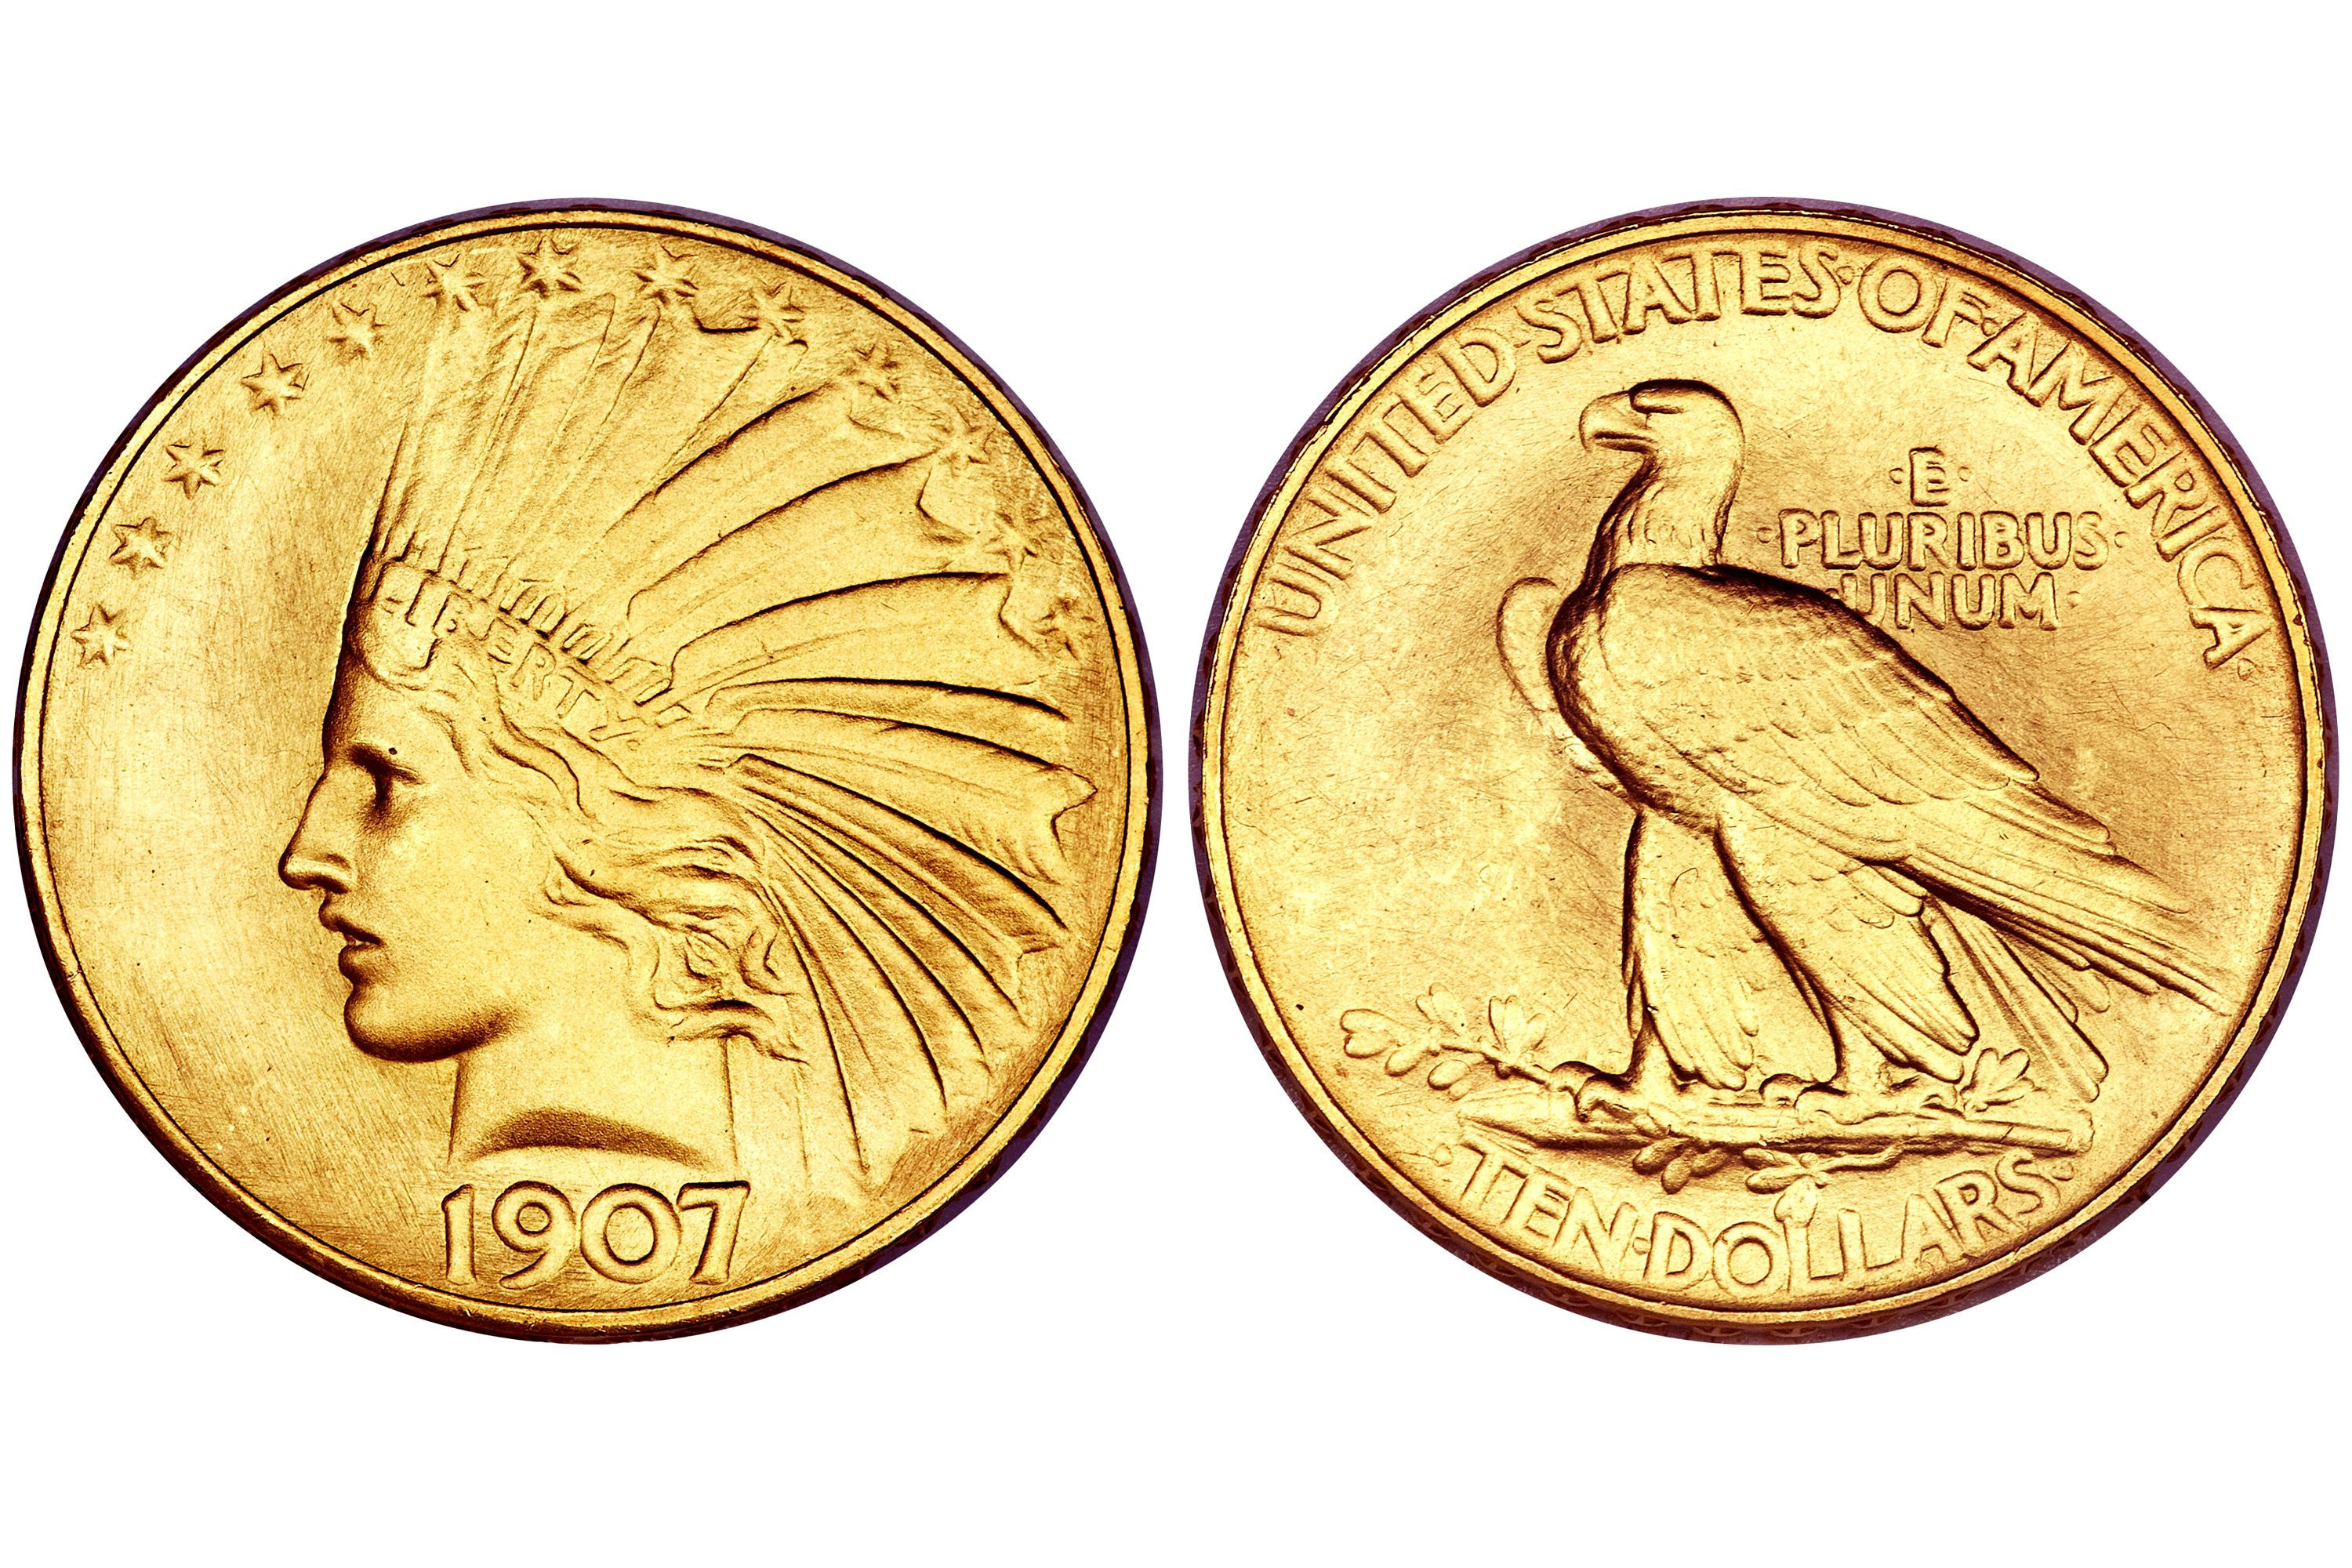 1907 Satin Proof Indian $10 Gold Eagle - Rolled Edge